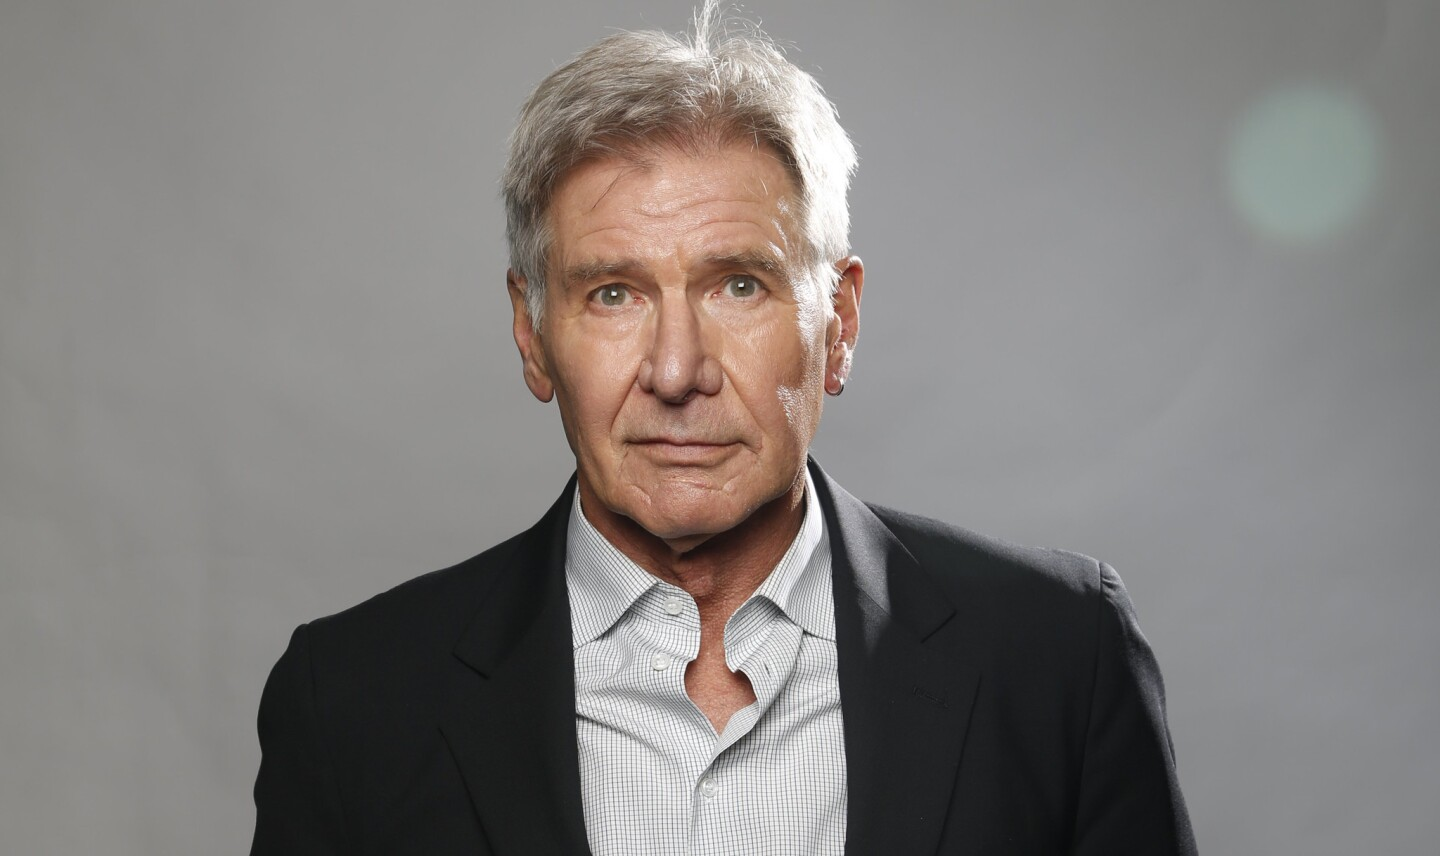 Harrison Ford | Career in pictures